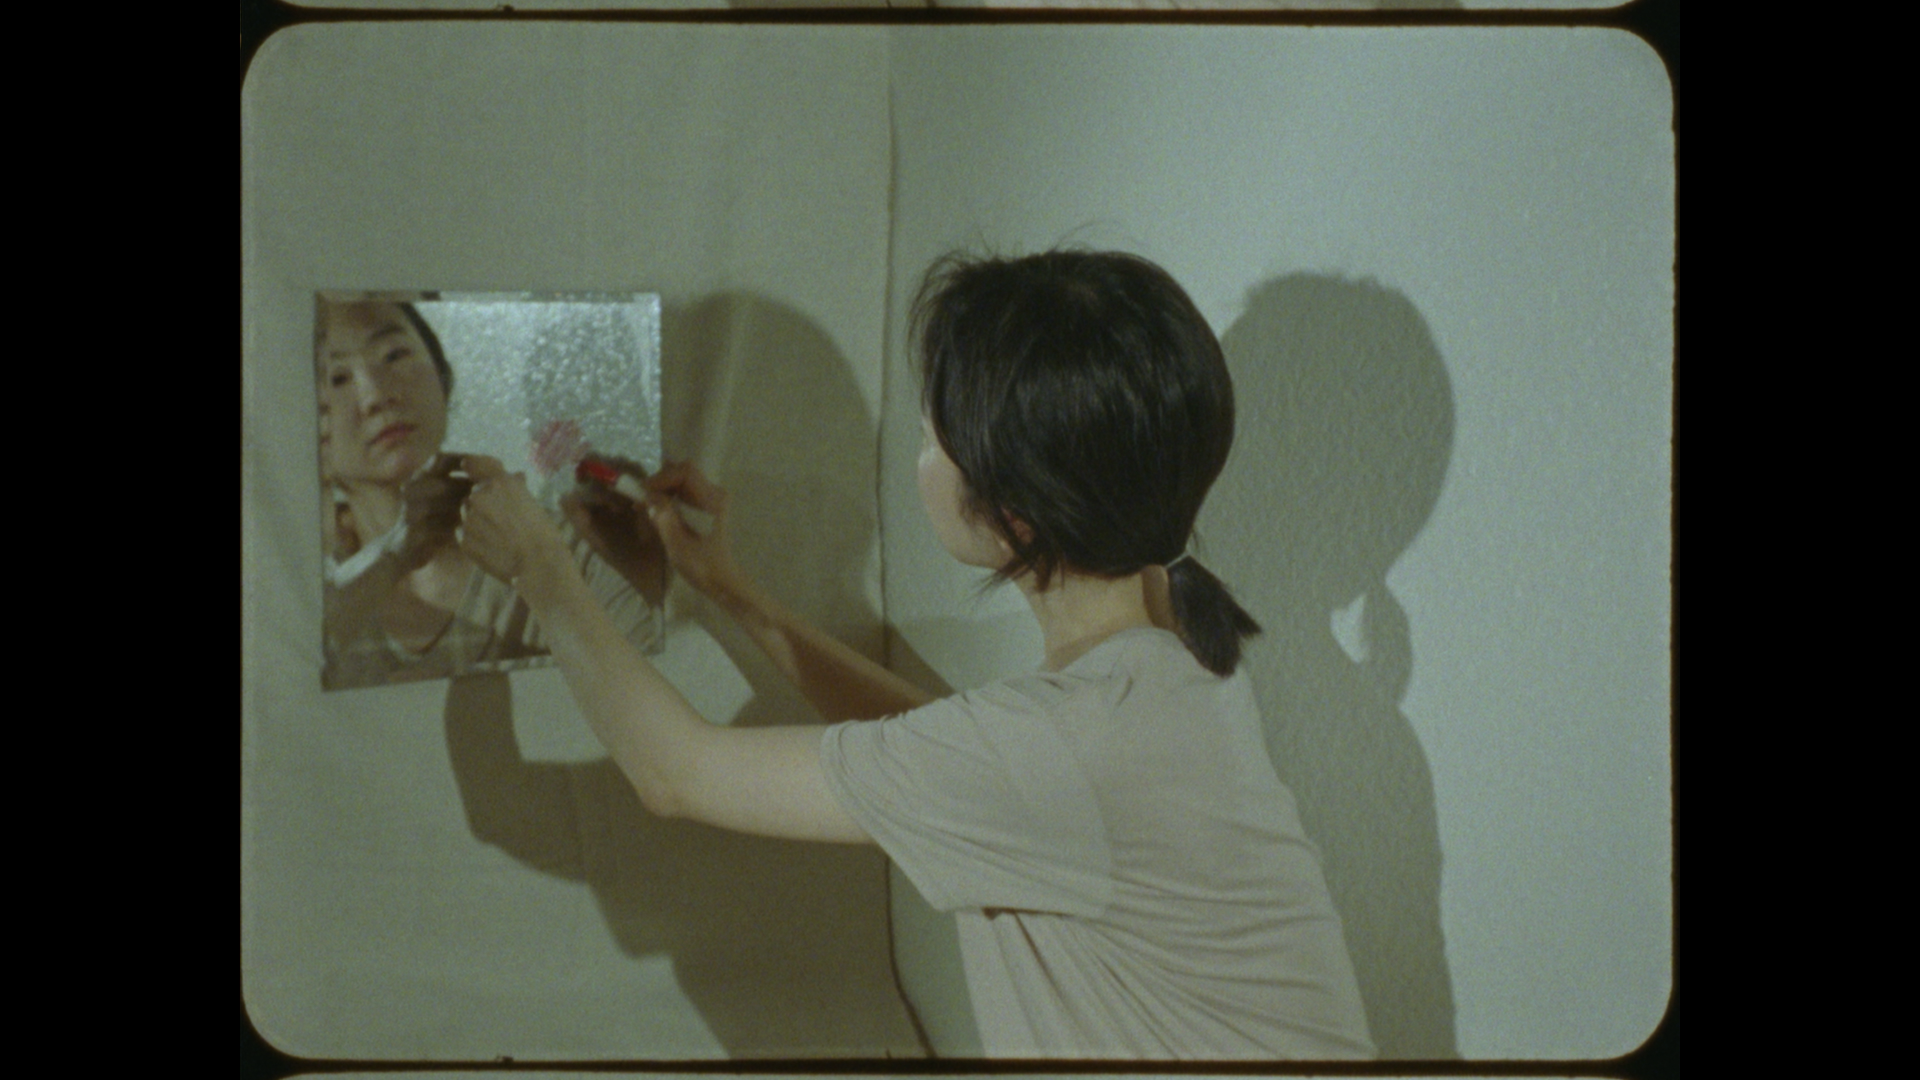 Still from BETWEEN THE EYES II